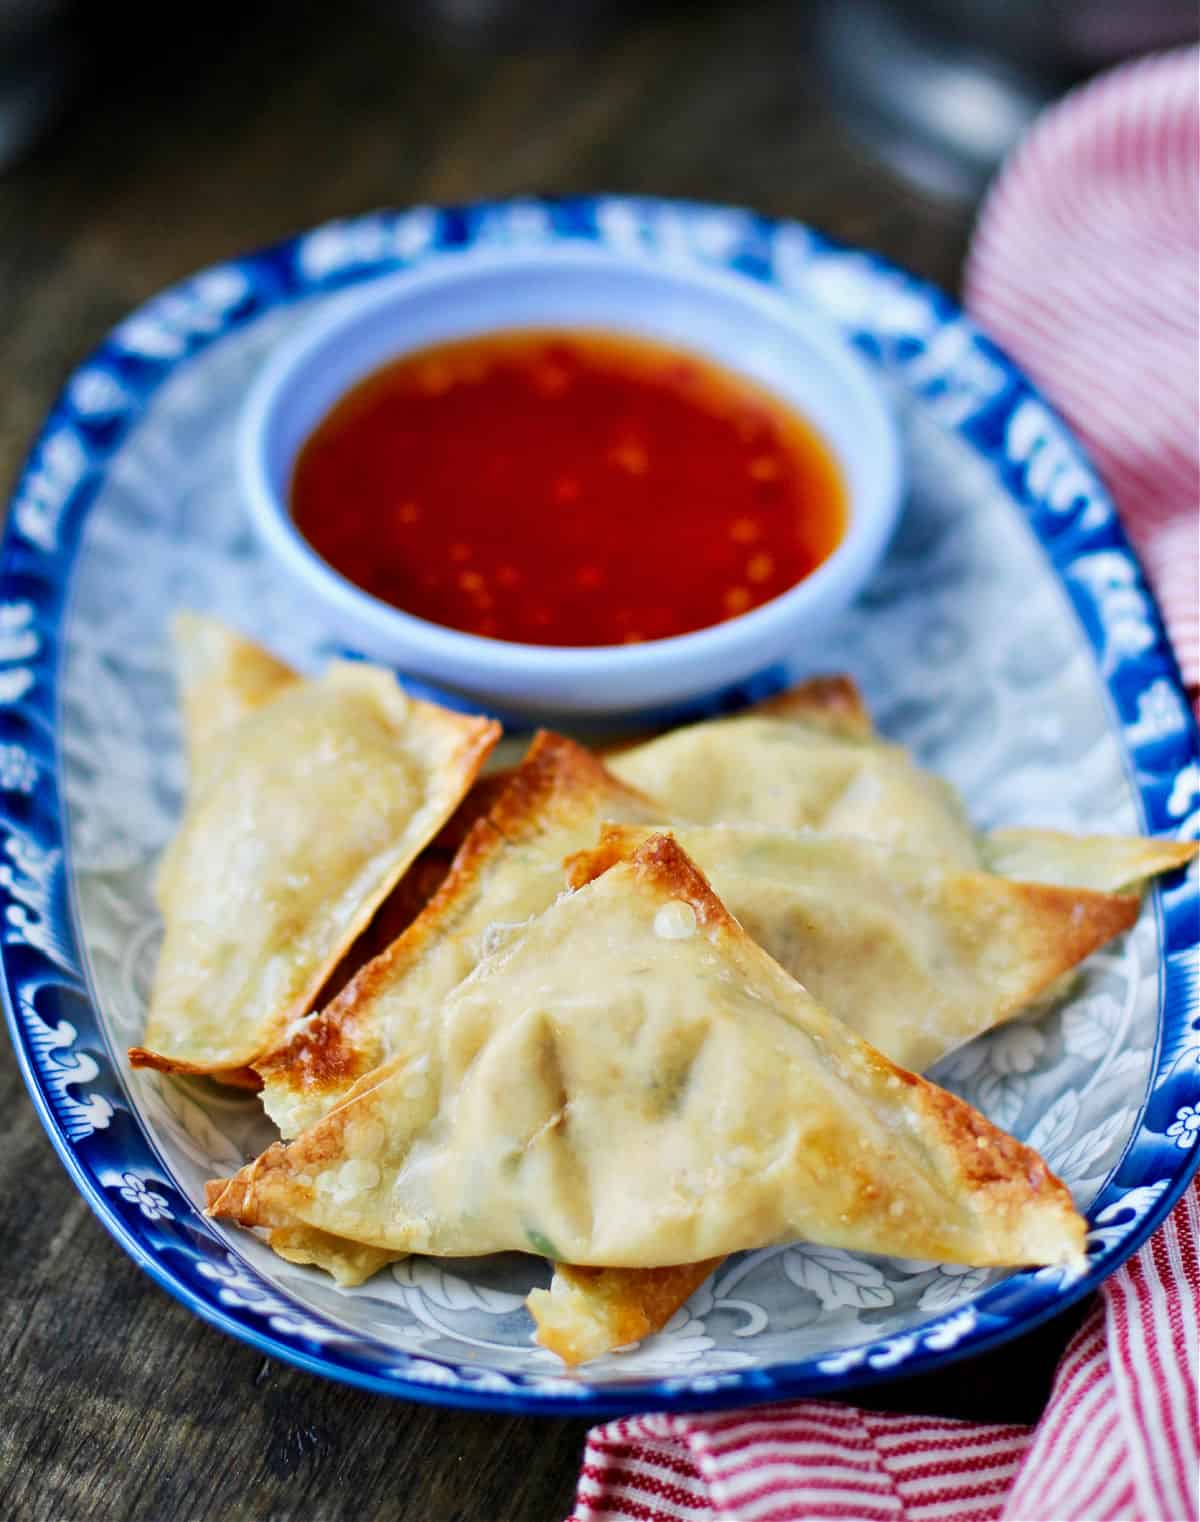 Crab rangoon on a plate with dip.